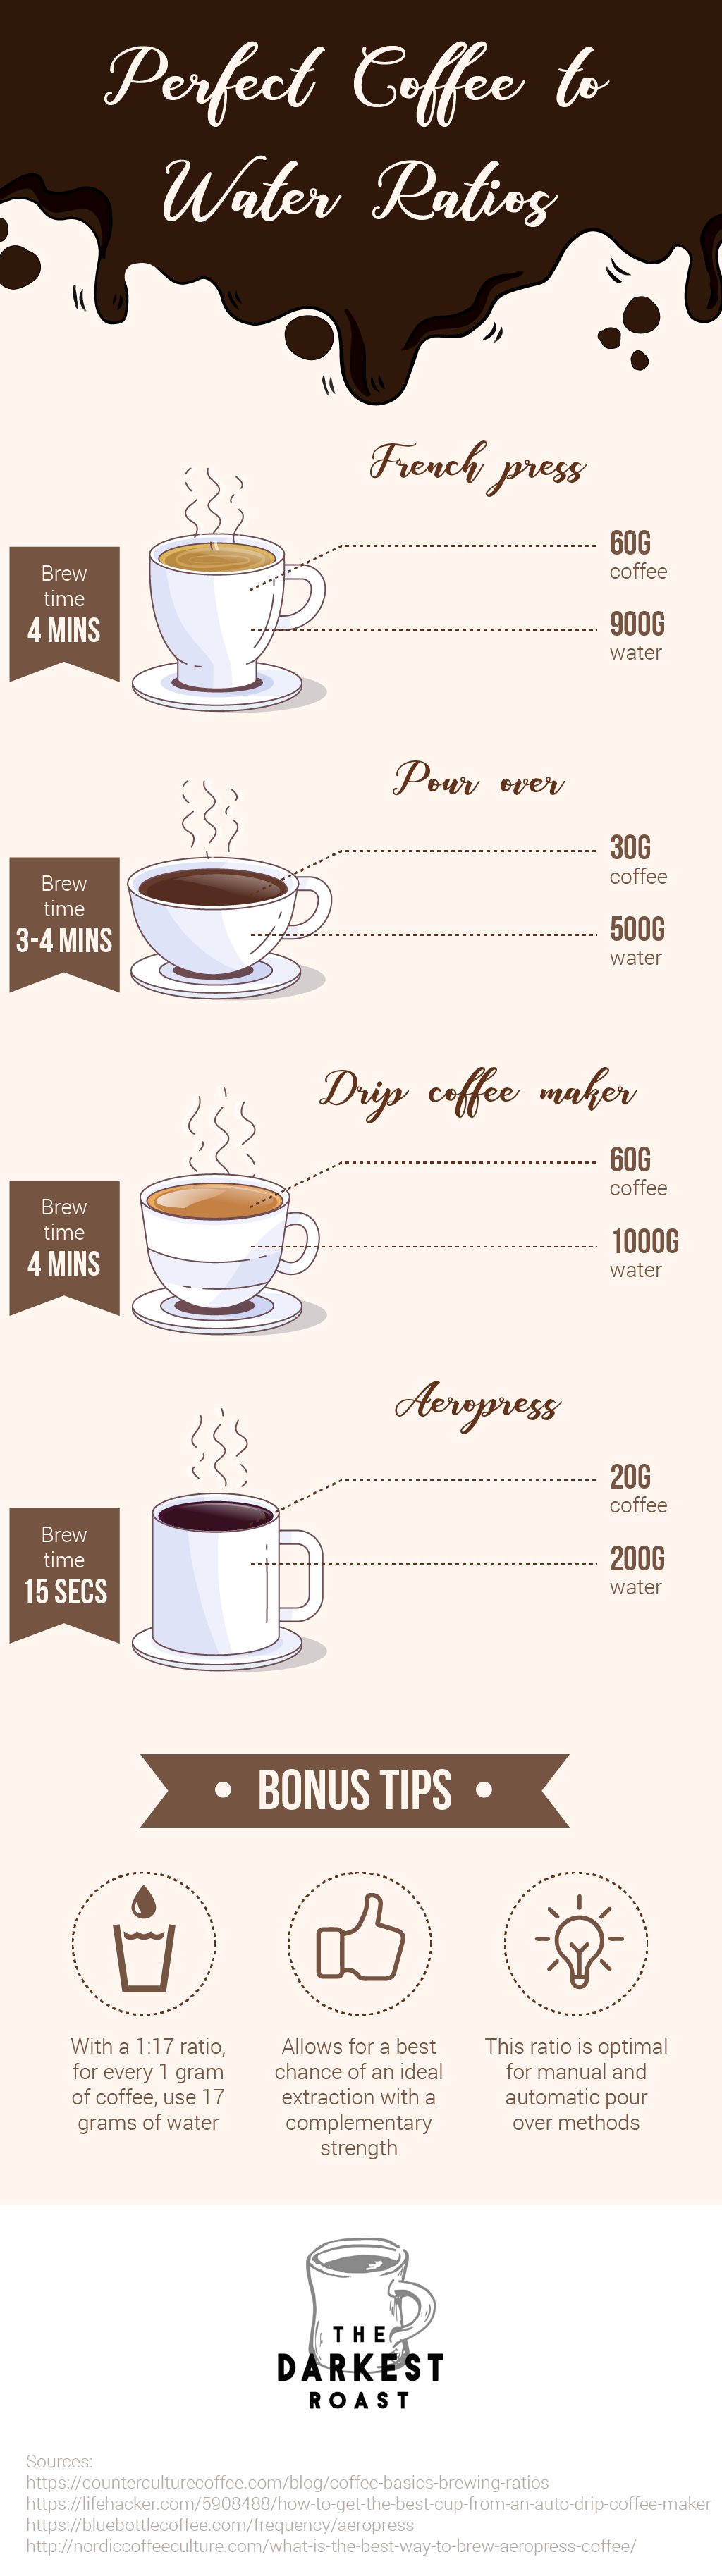 The Perfect Coffee To Water Ratio The Darkest Roast